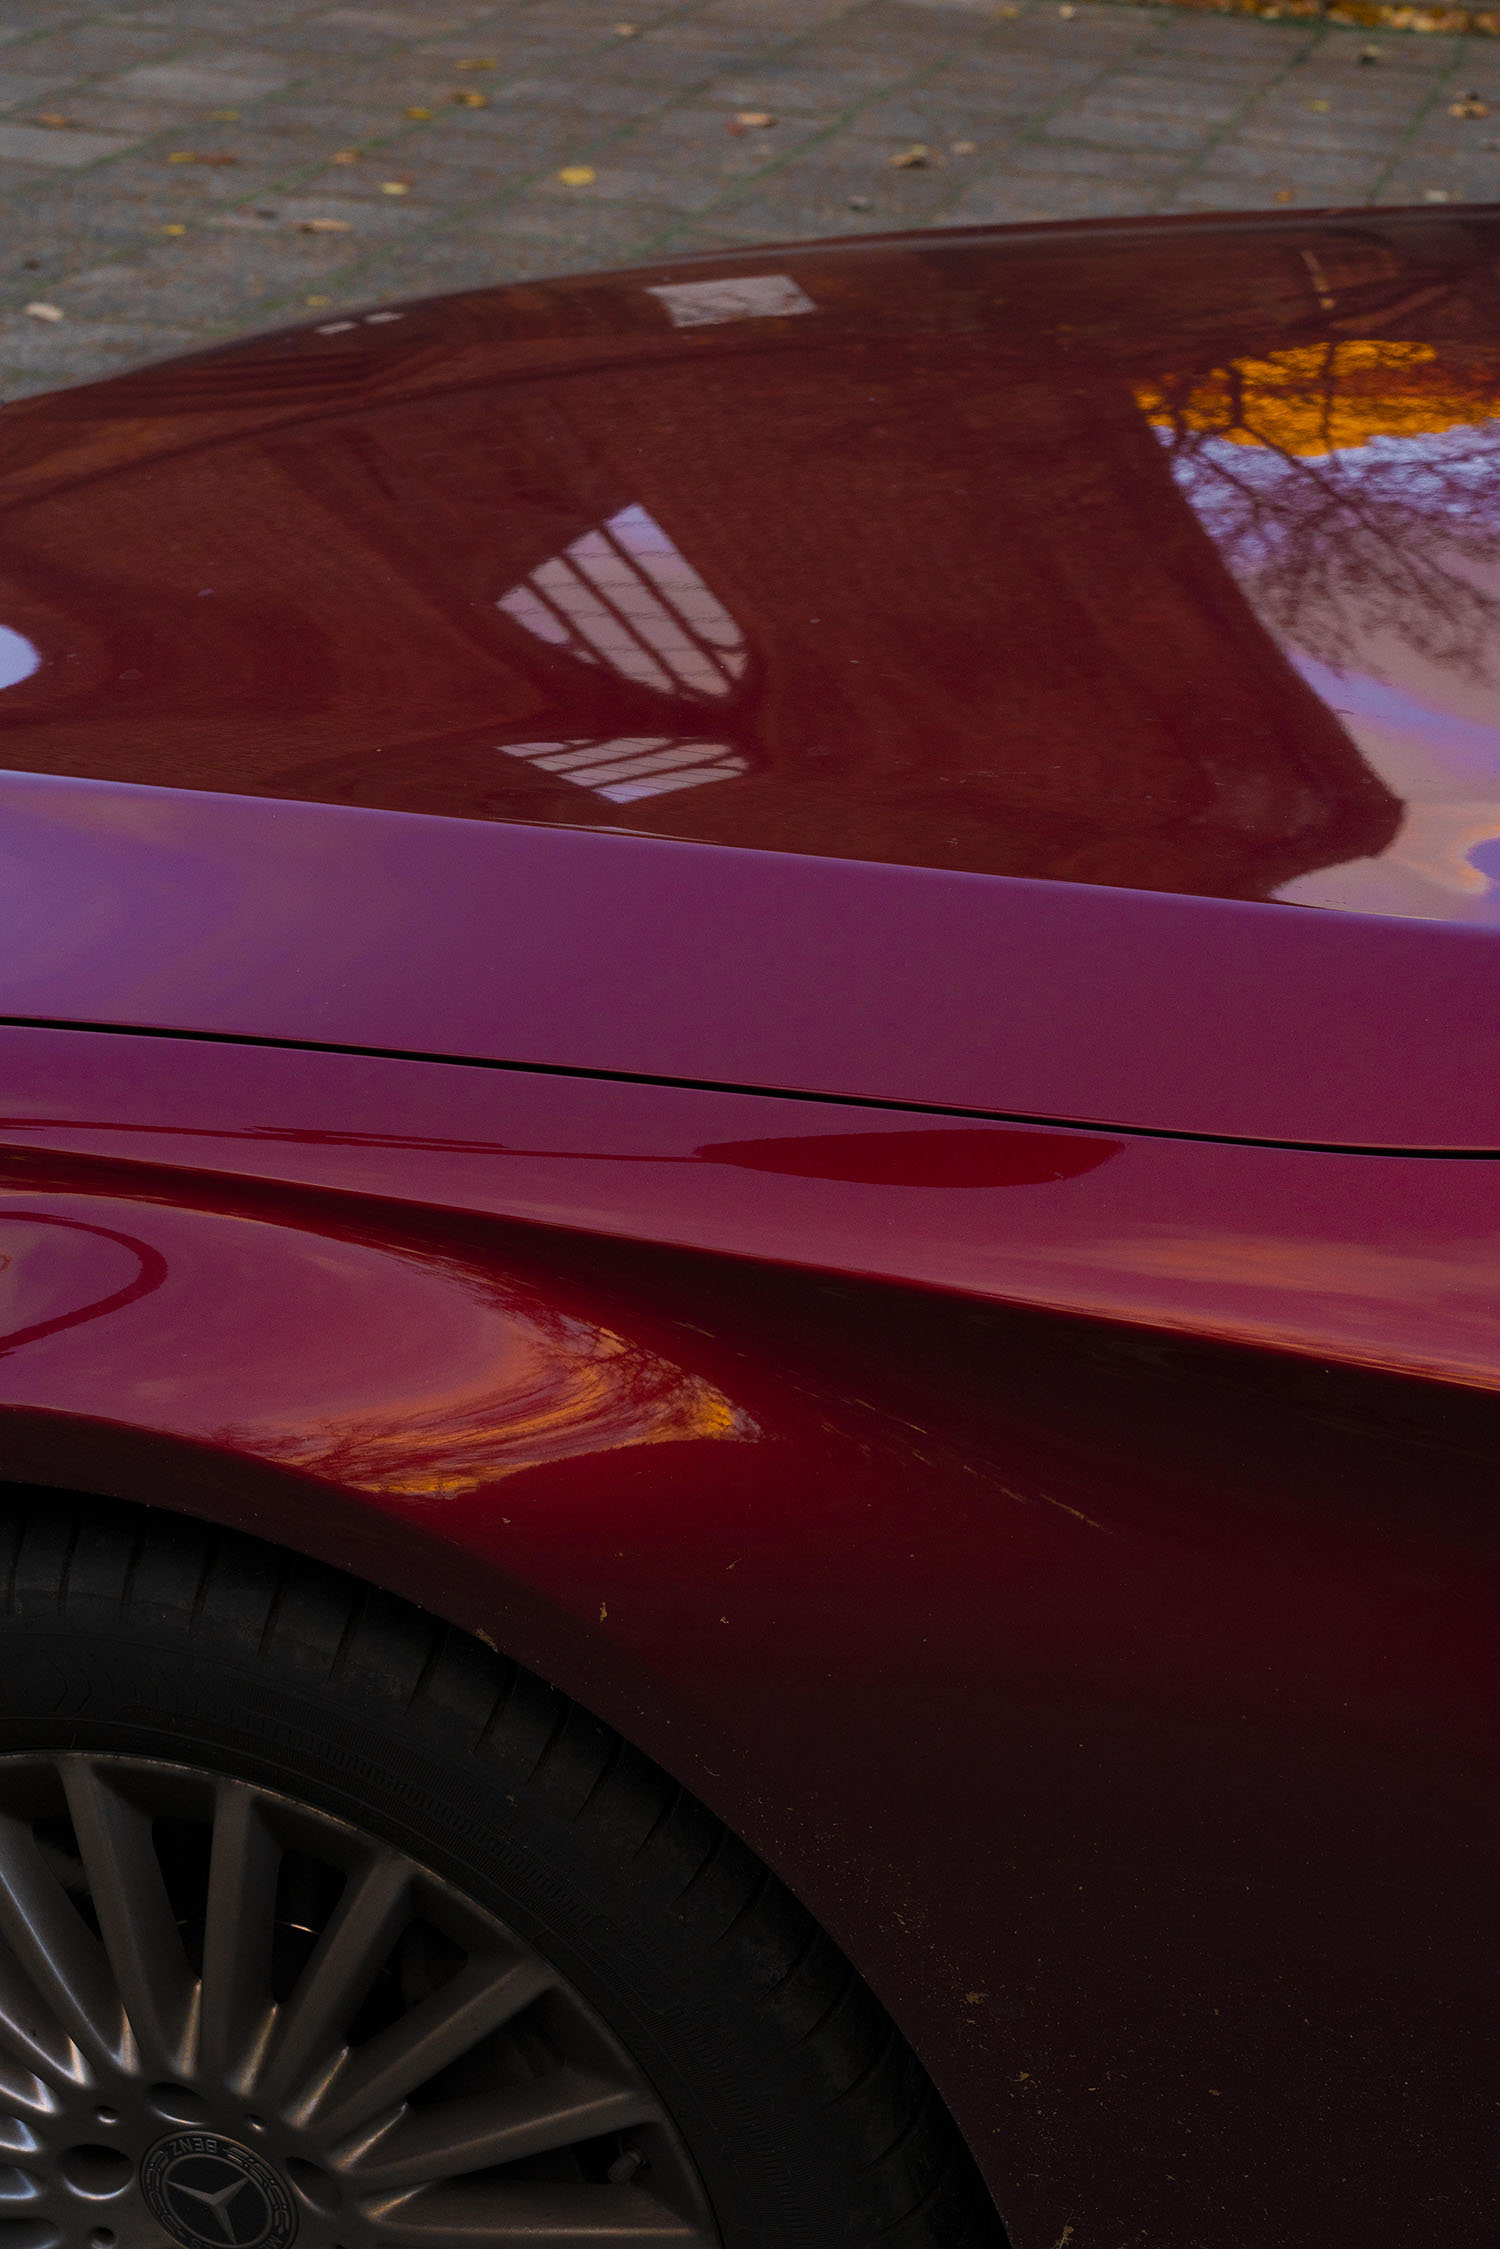 Photo by Paul Niedermayer. The contours of Klosterruine reflect in the shiny surface of a car